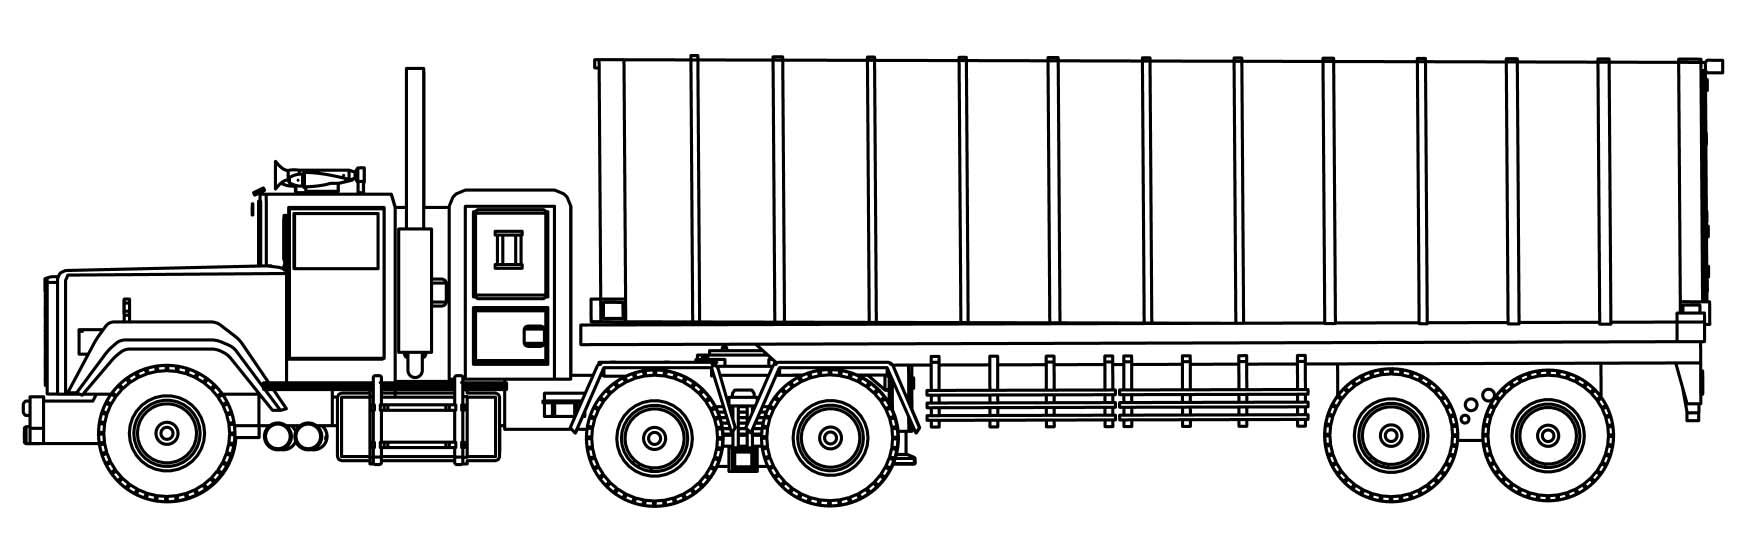 cool truck coloring pages pin by muriel wright on trucks truck coloring pages cool pages truck coloring